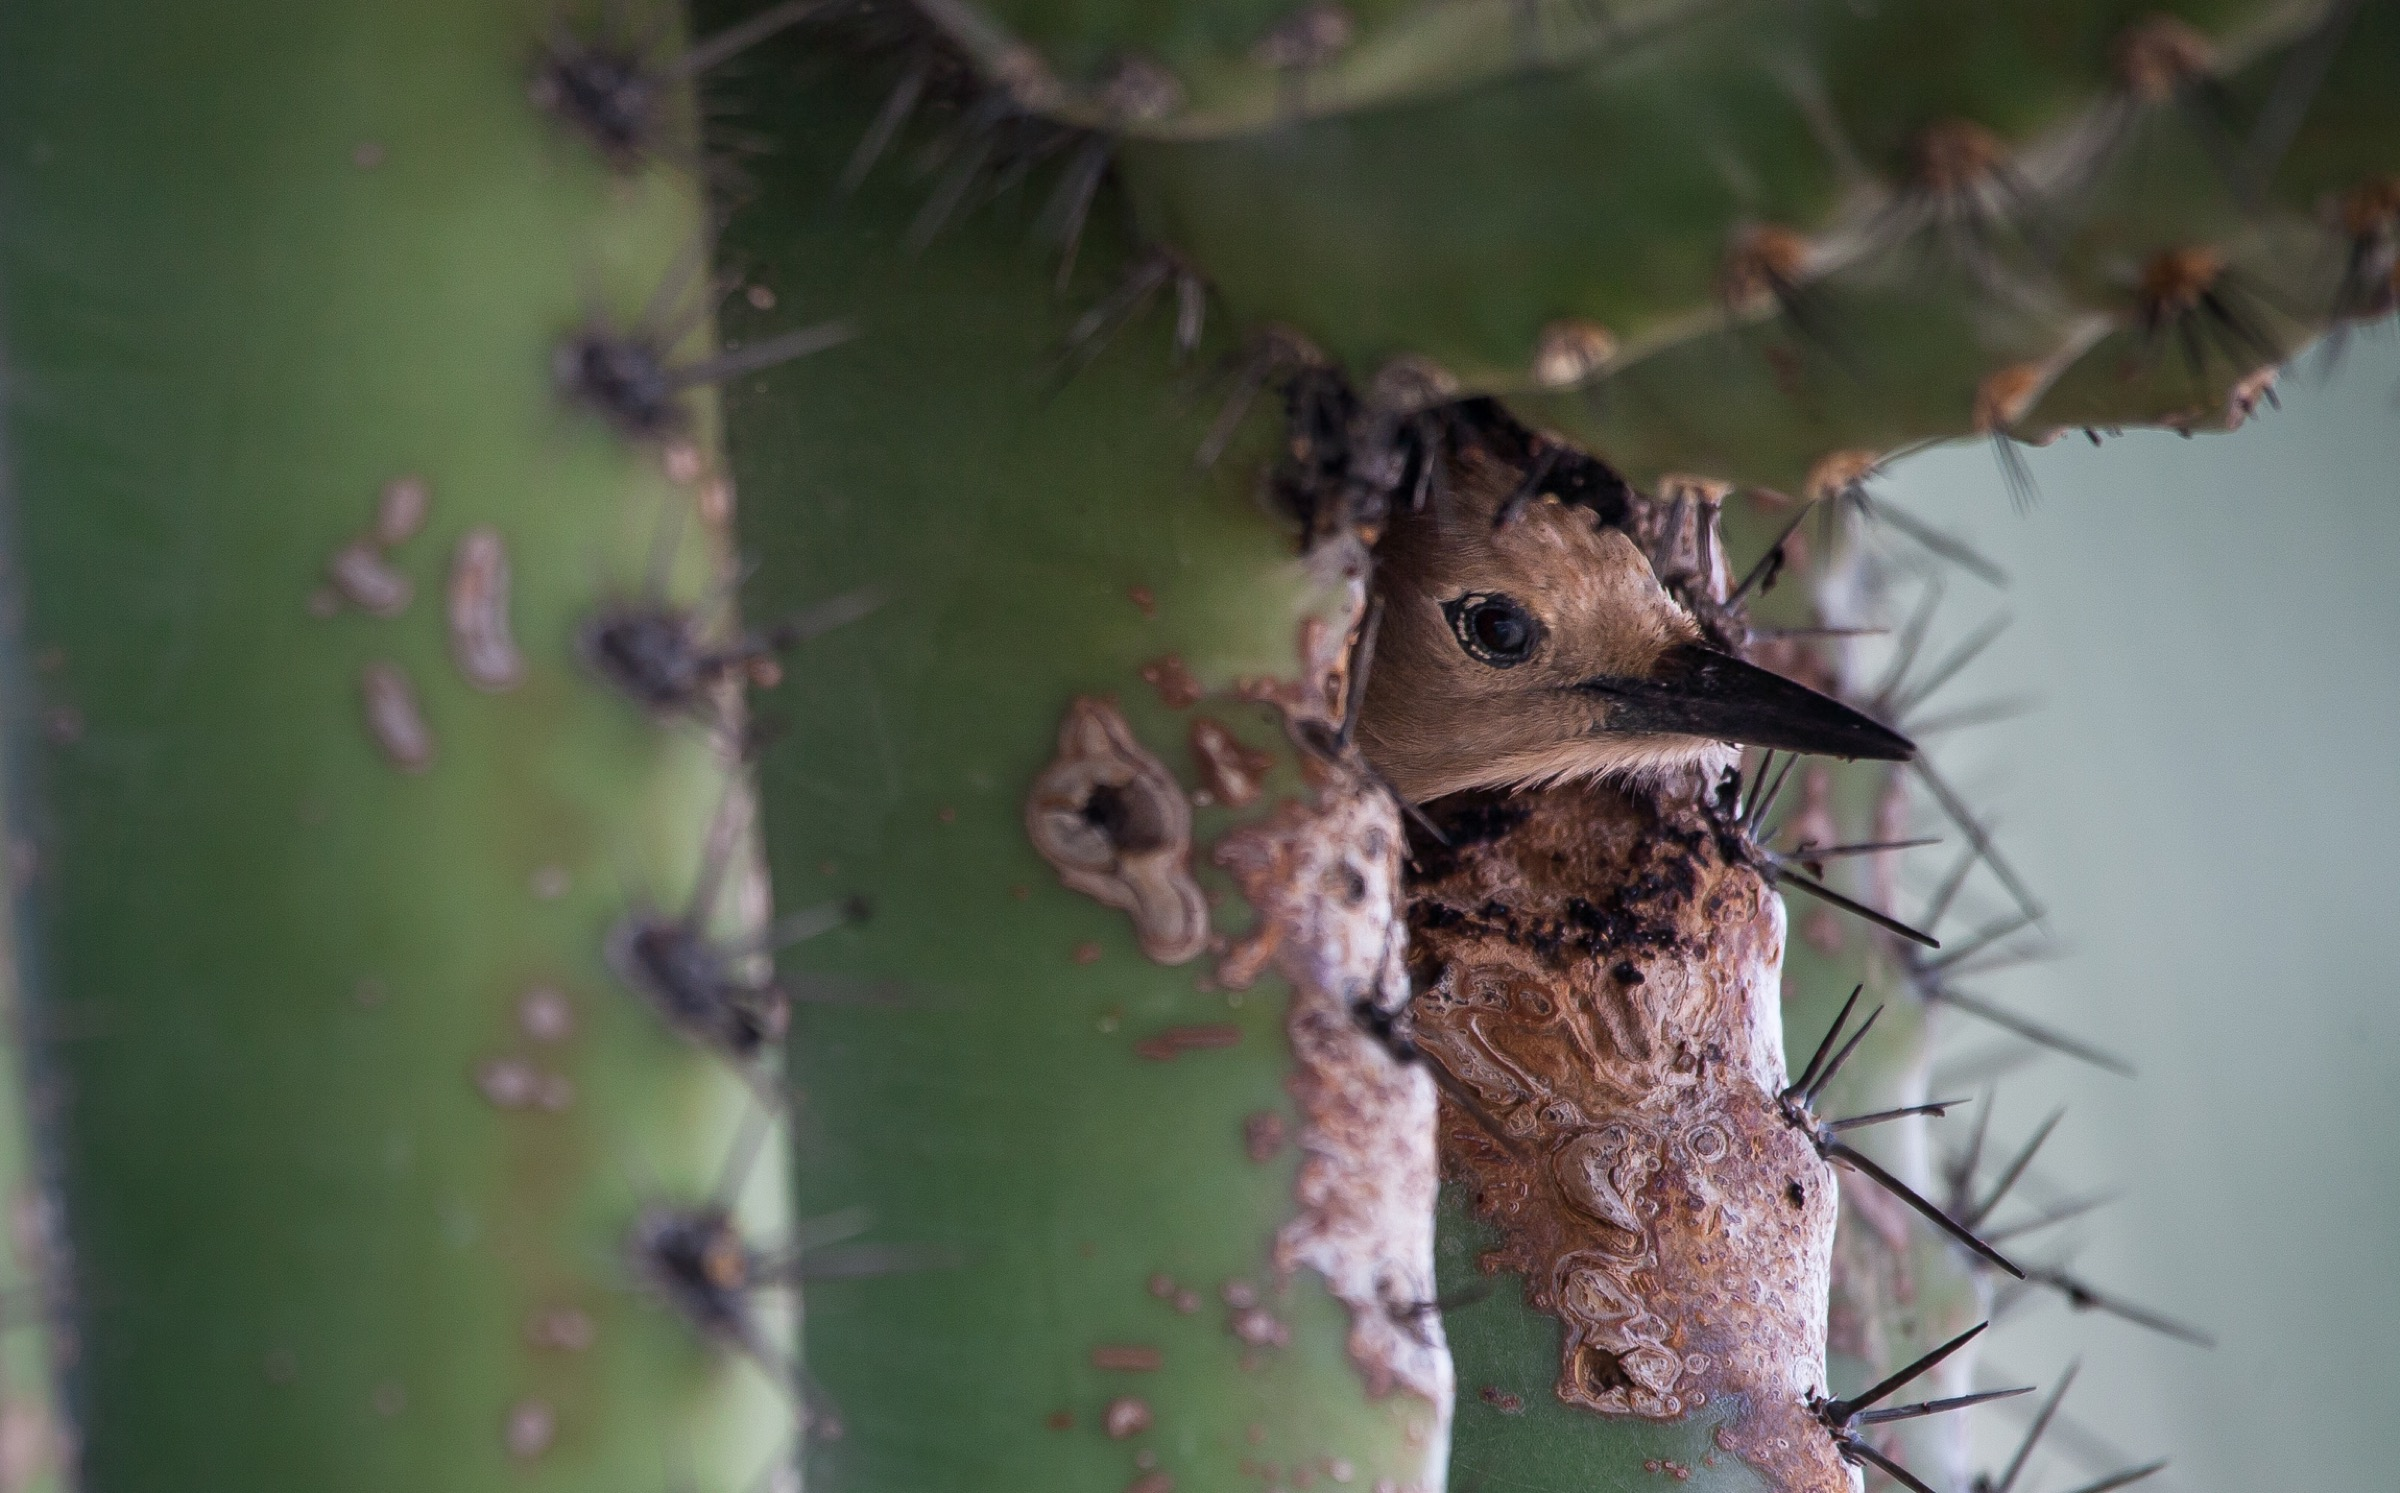 A gila woodpecker (Melanerpes uropygialis) in a saguaro cactus (Carnegiea gigantea) cavity. The saguaro is a keystone plant species in the Sonoran Desert, providing homes and food for many desert species. Photograph by Krista Schyler